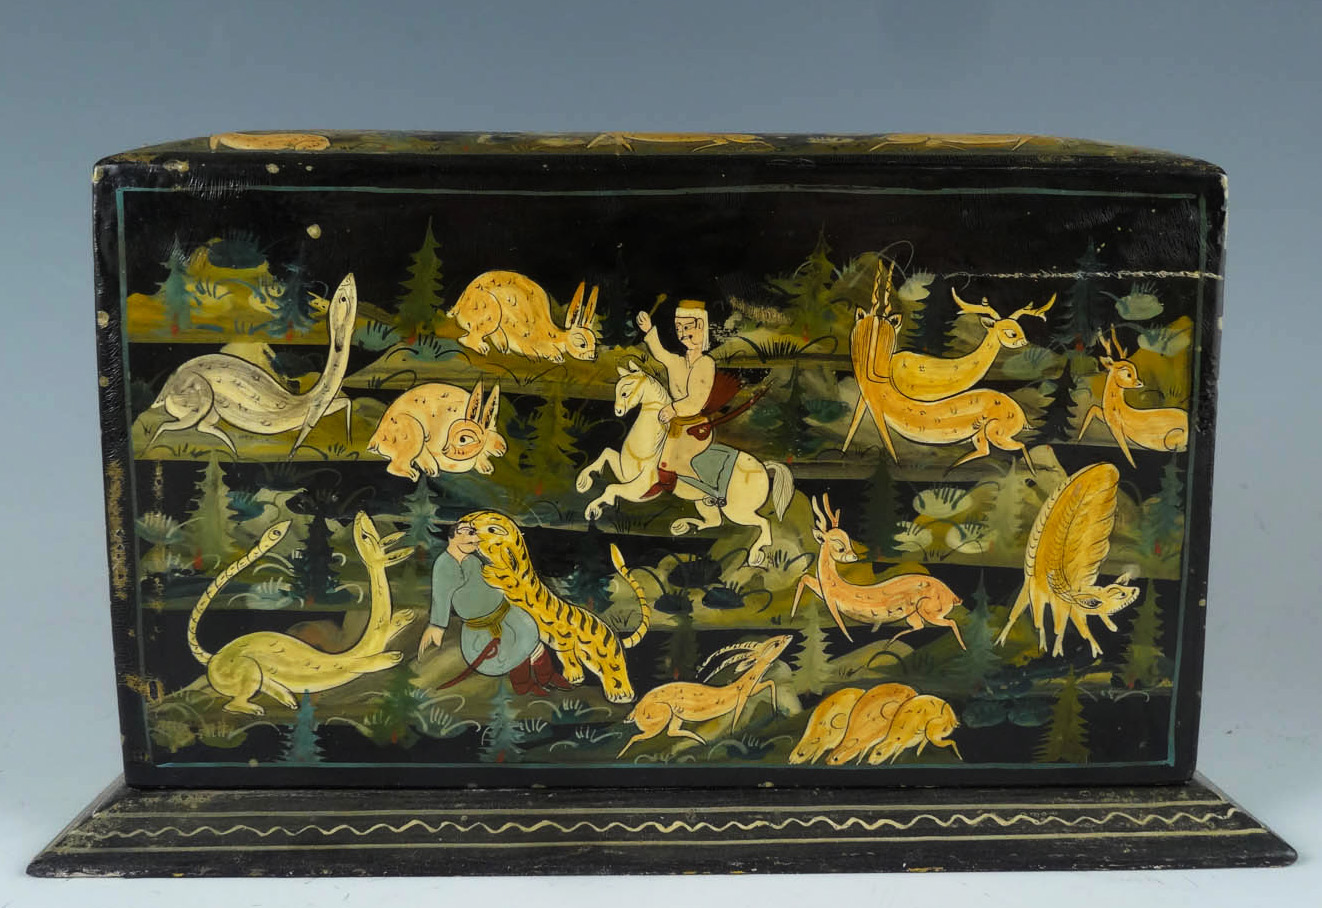 Antique Painted Lacquer Hunting Scene with Deer, Tiger, Man on Horse